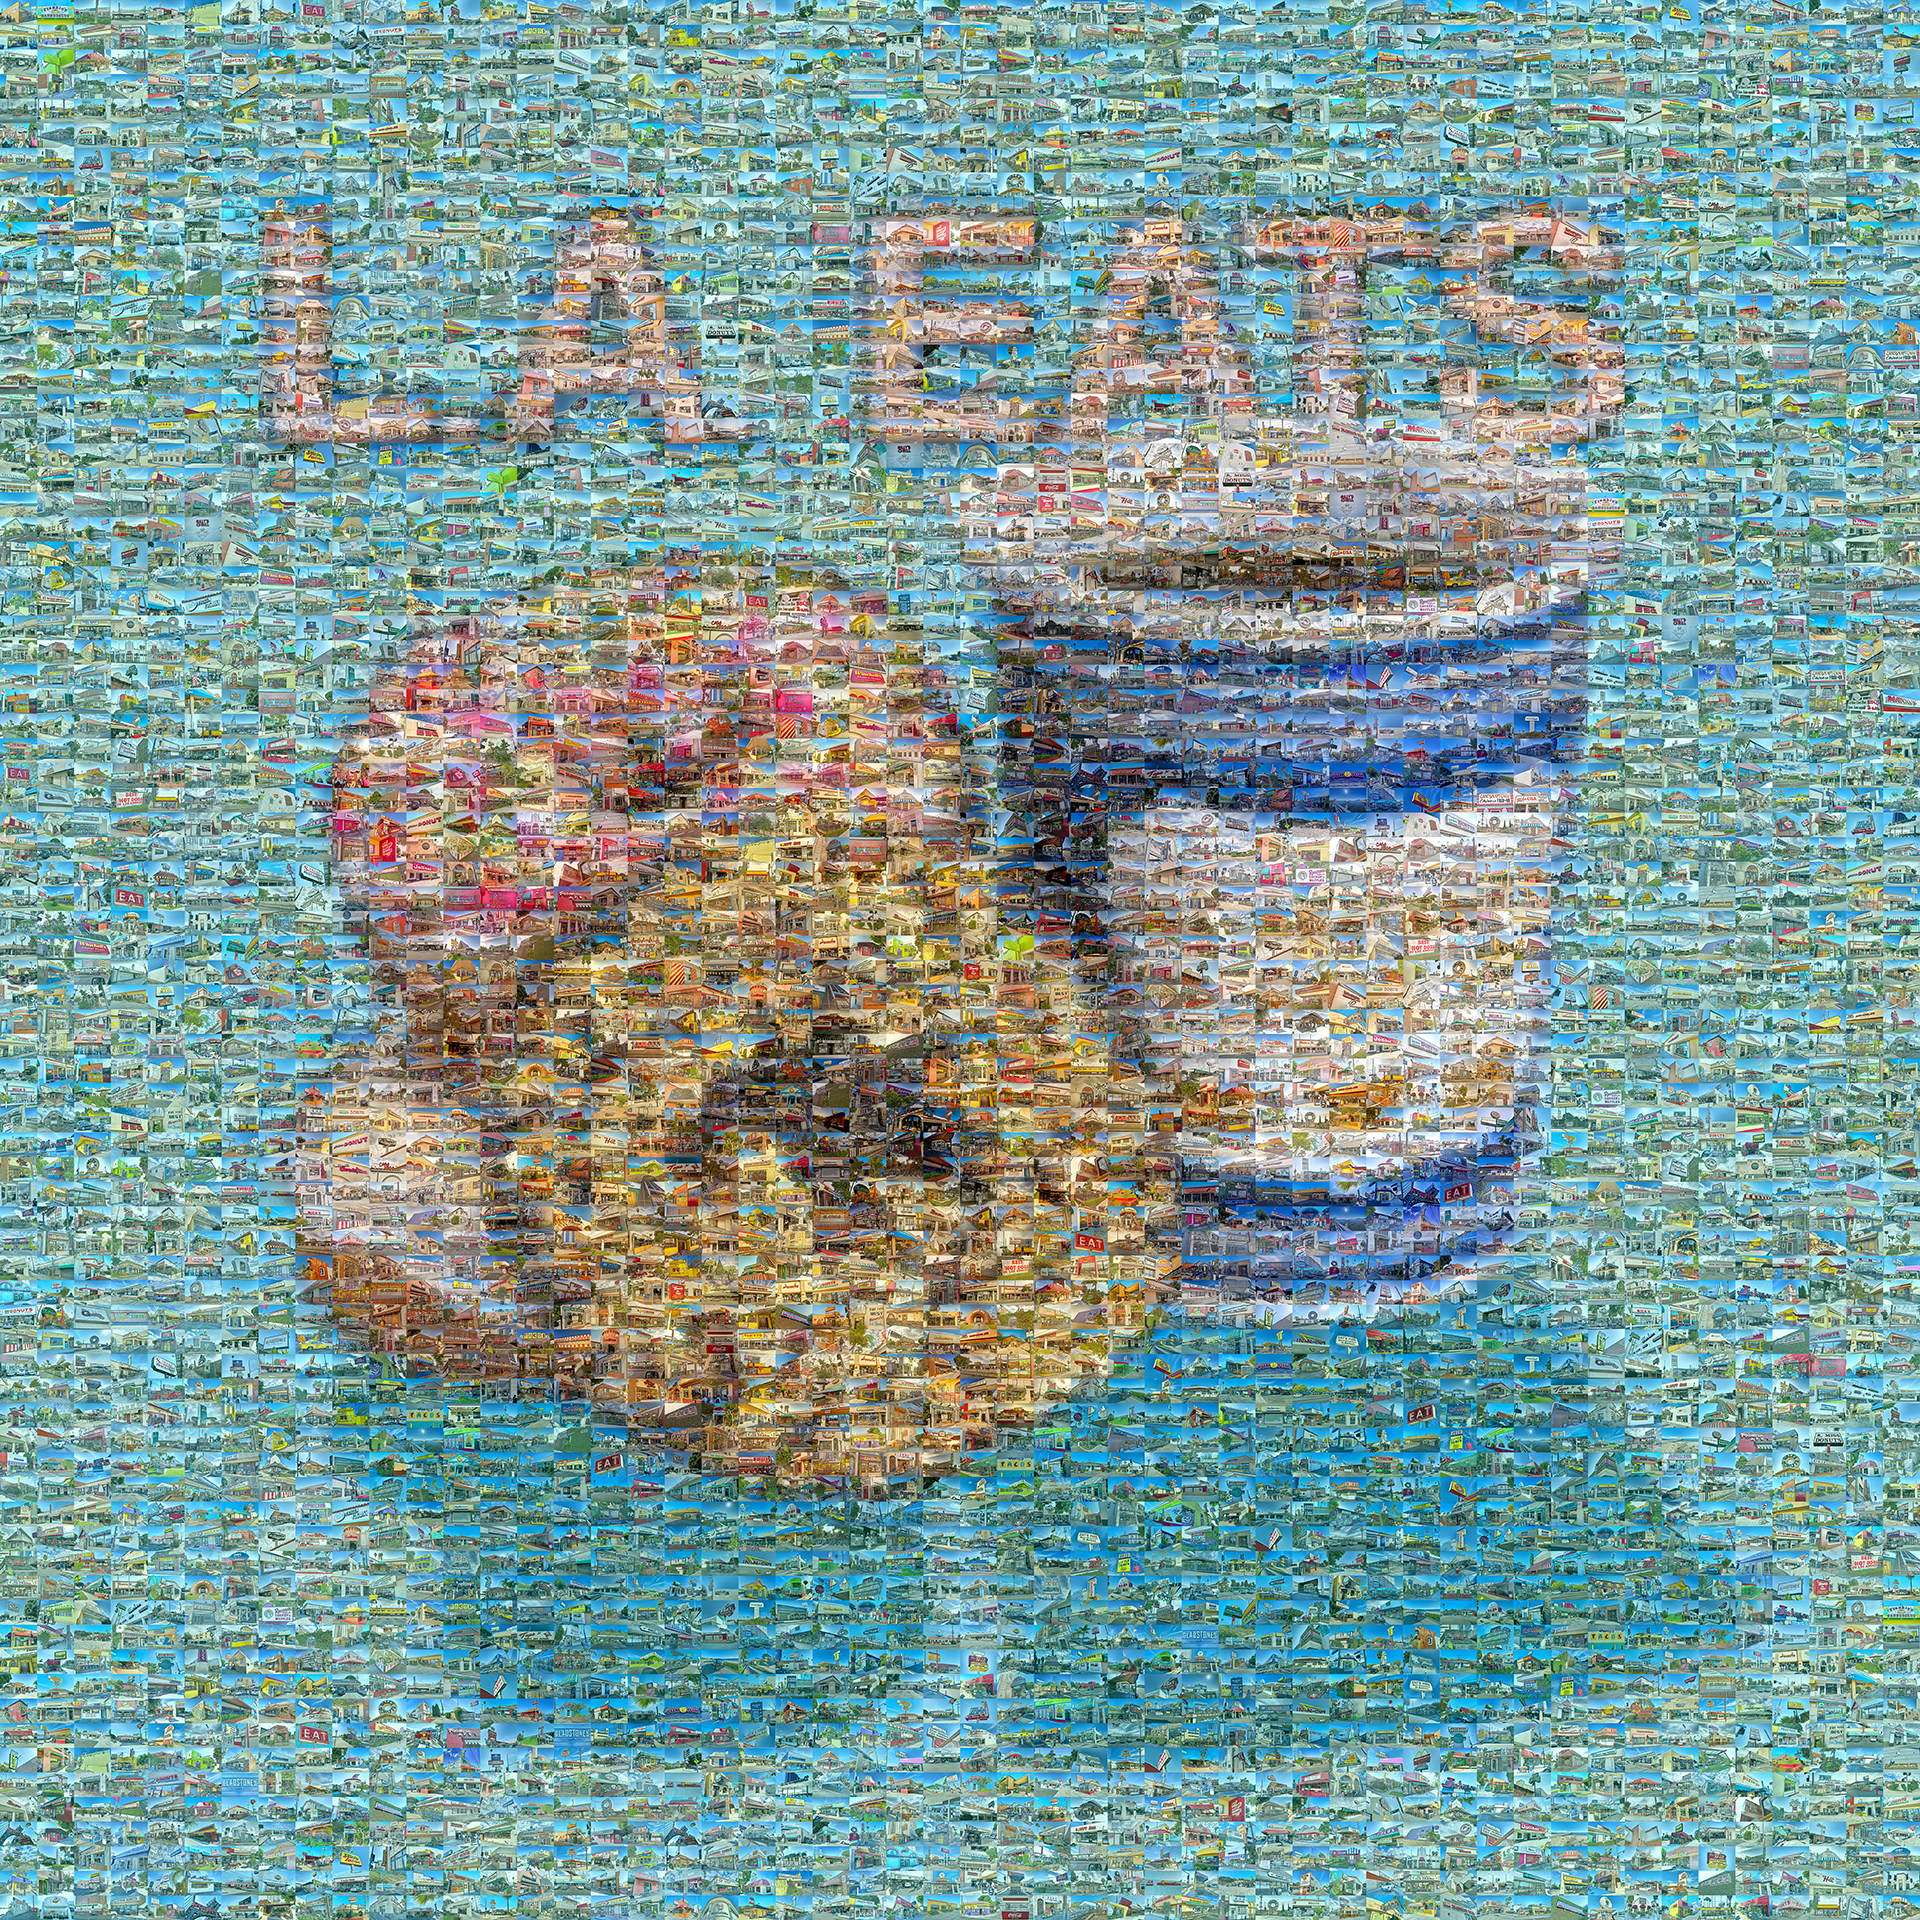 photo mosaic created using 1,163 photos of various doughnut shops and diners around L.A.